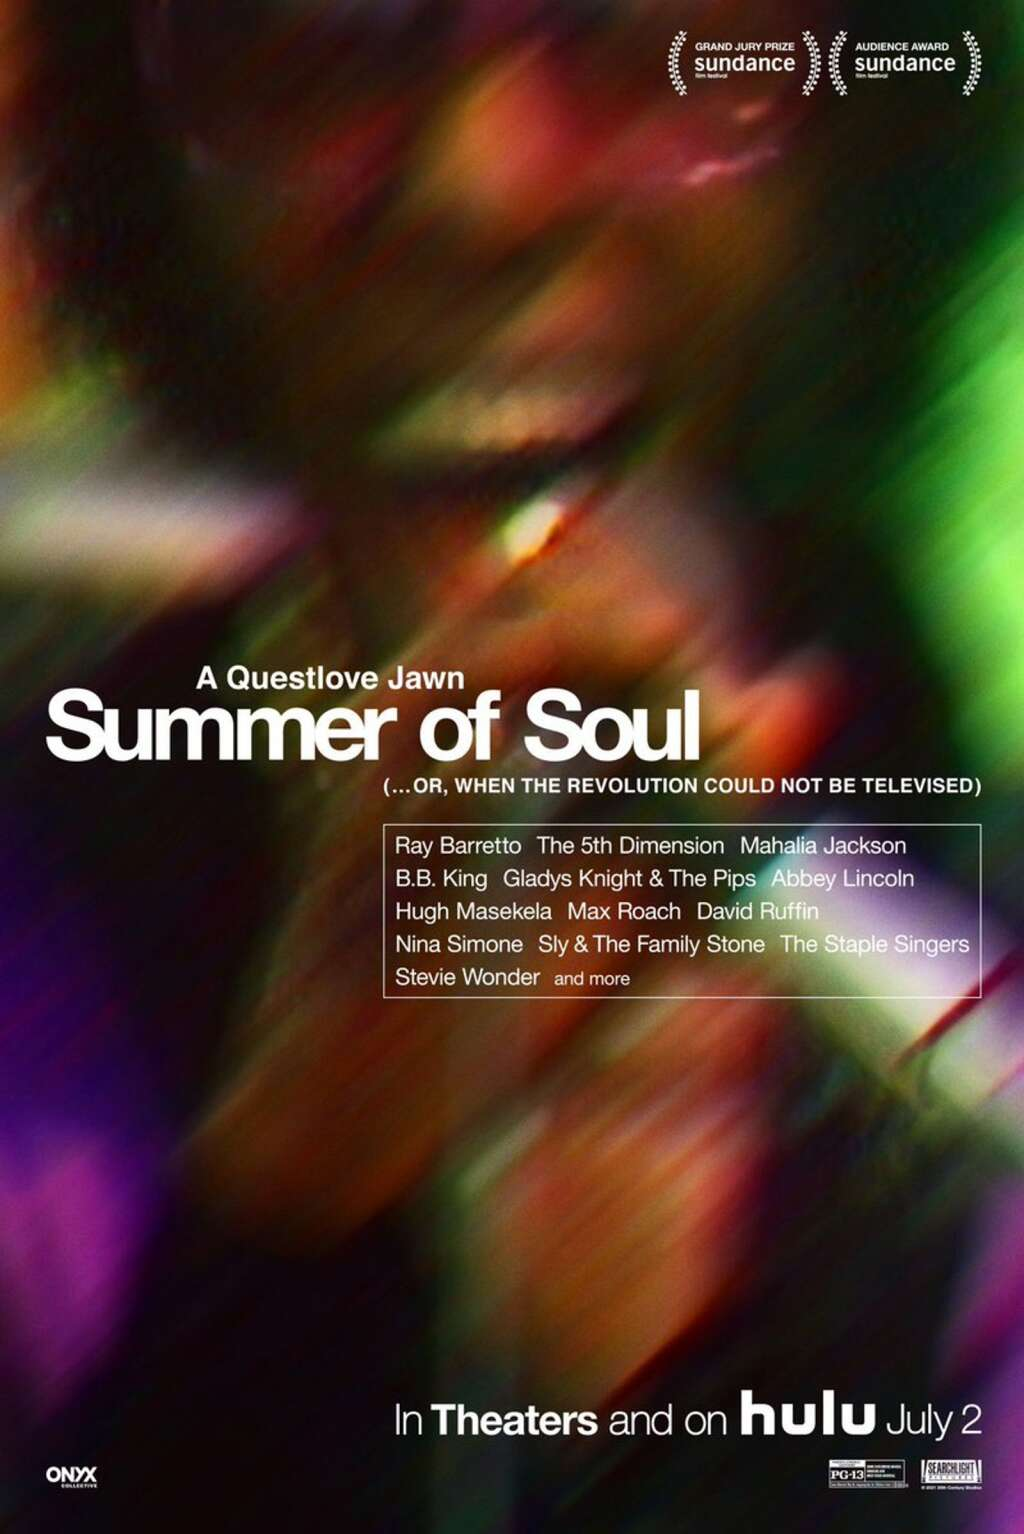 """""""Summer of Soul"""" will have outdoor screenings this weekend in Snowmass Town Park and Marcus Garvey Park in Harlem, where it was filmed in 1969. It goes to theaters and streaming on July 2."""